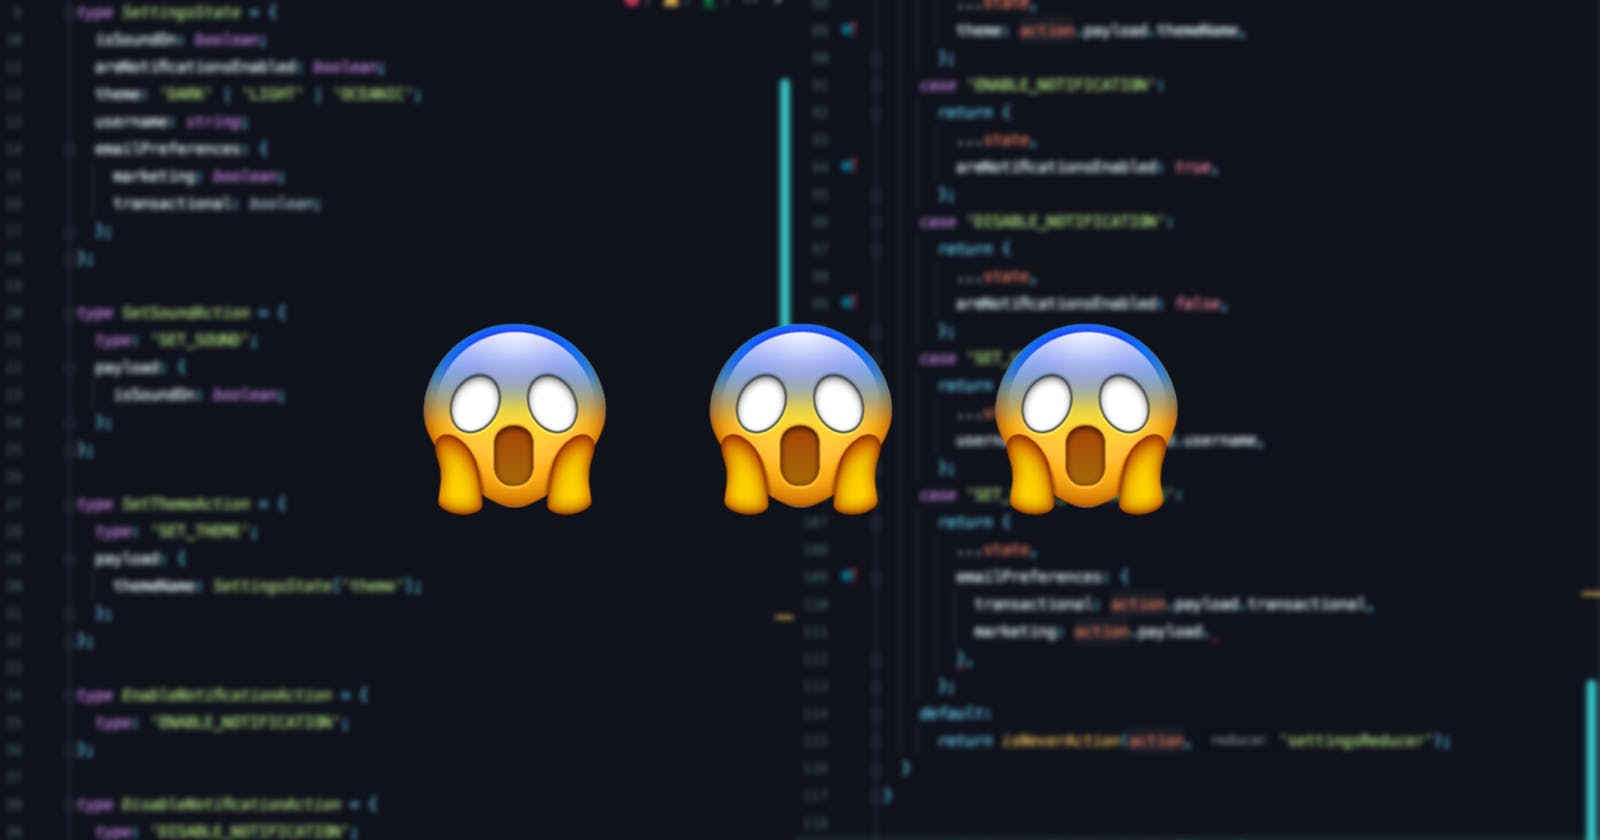 The single biggest mistake you could make in TypeScript